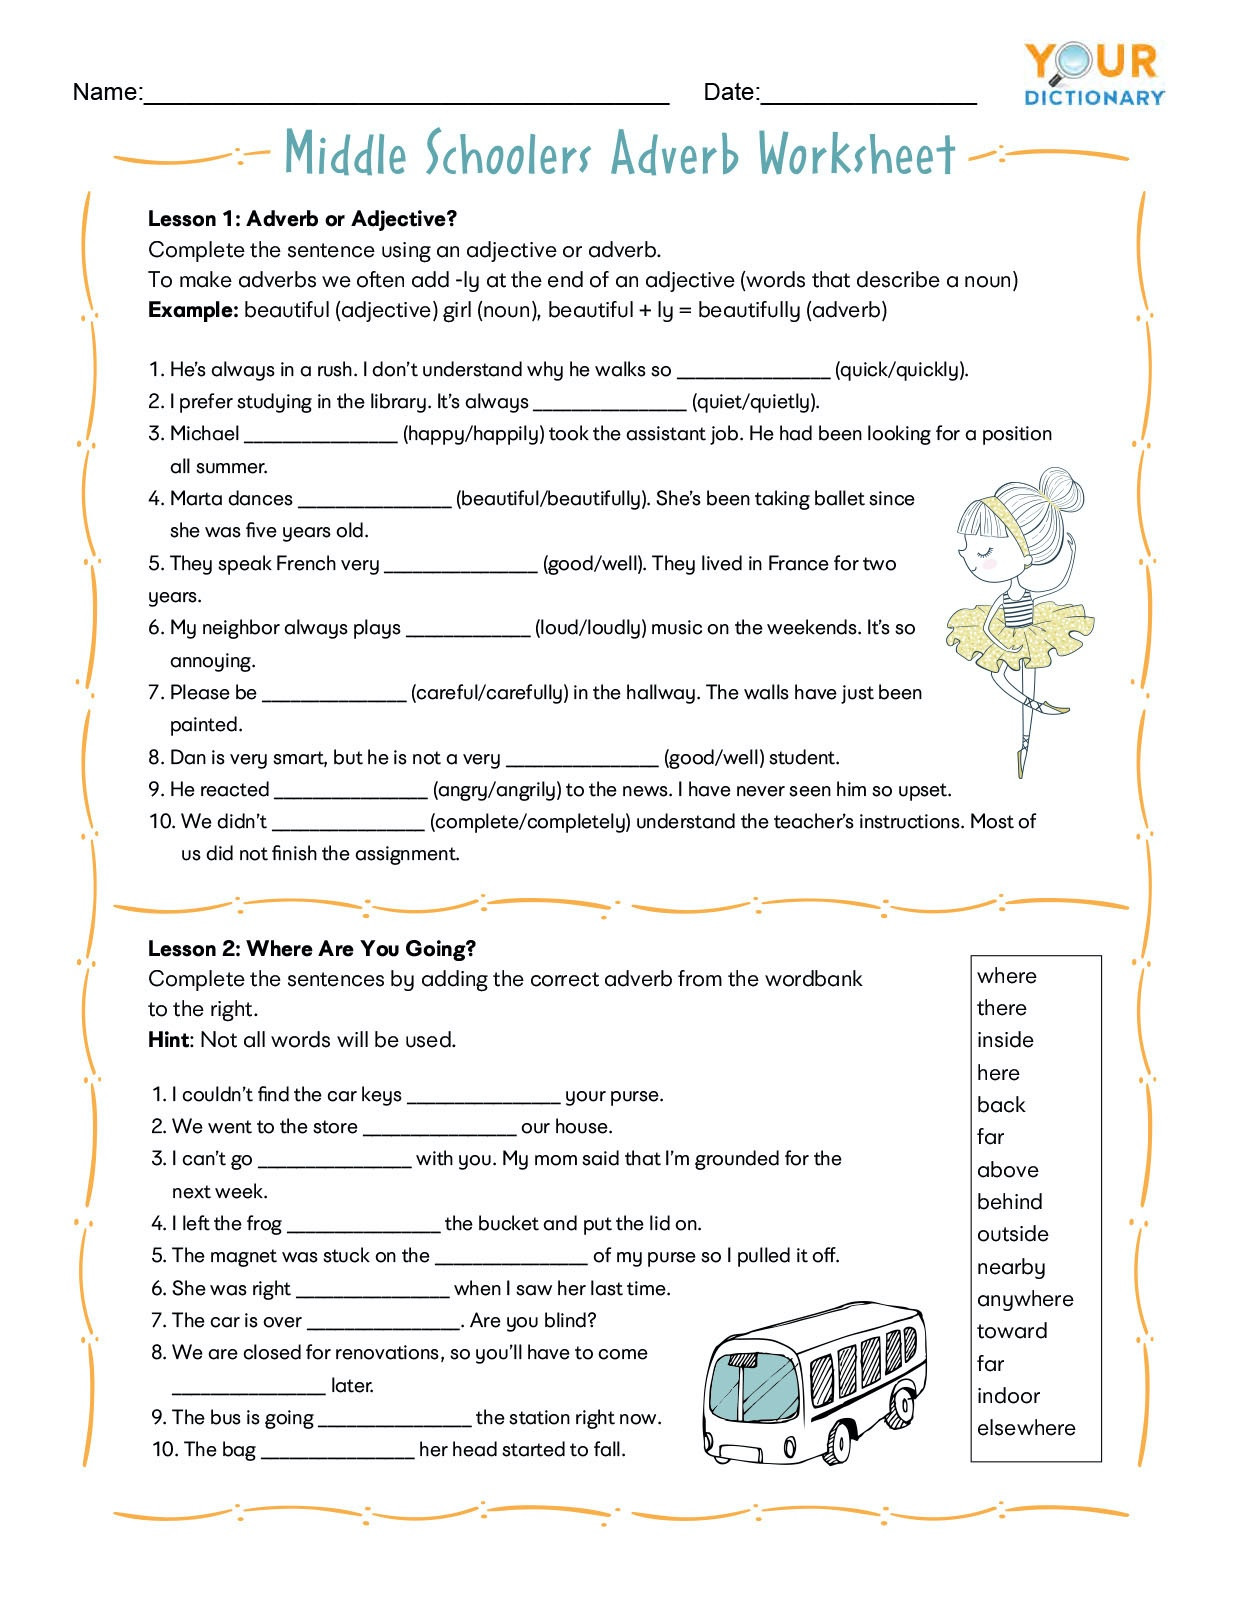 Sequencing Worksheets Middle School Adverb Worksheets for Elementary and Middle School